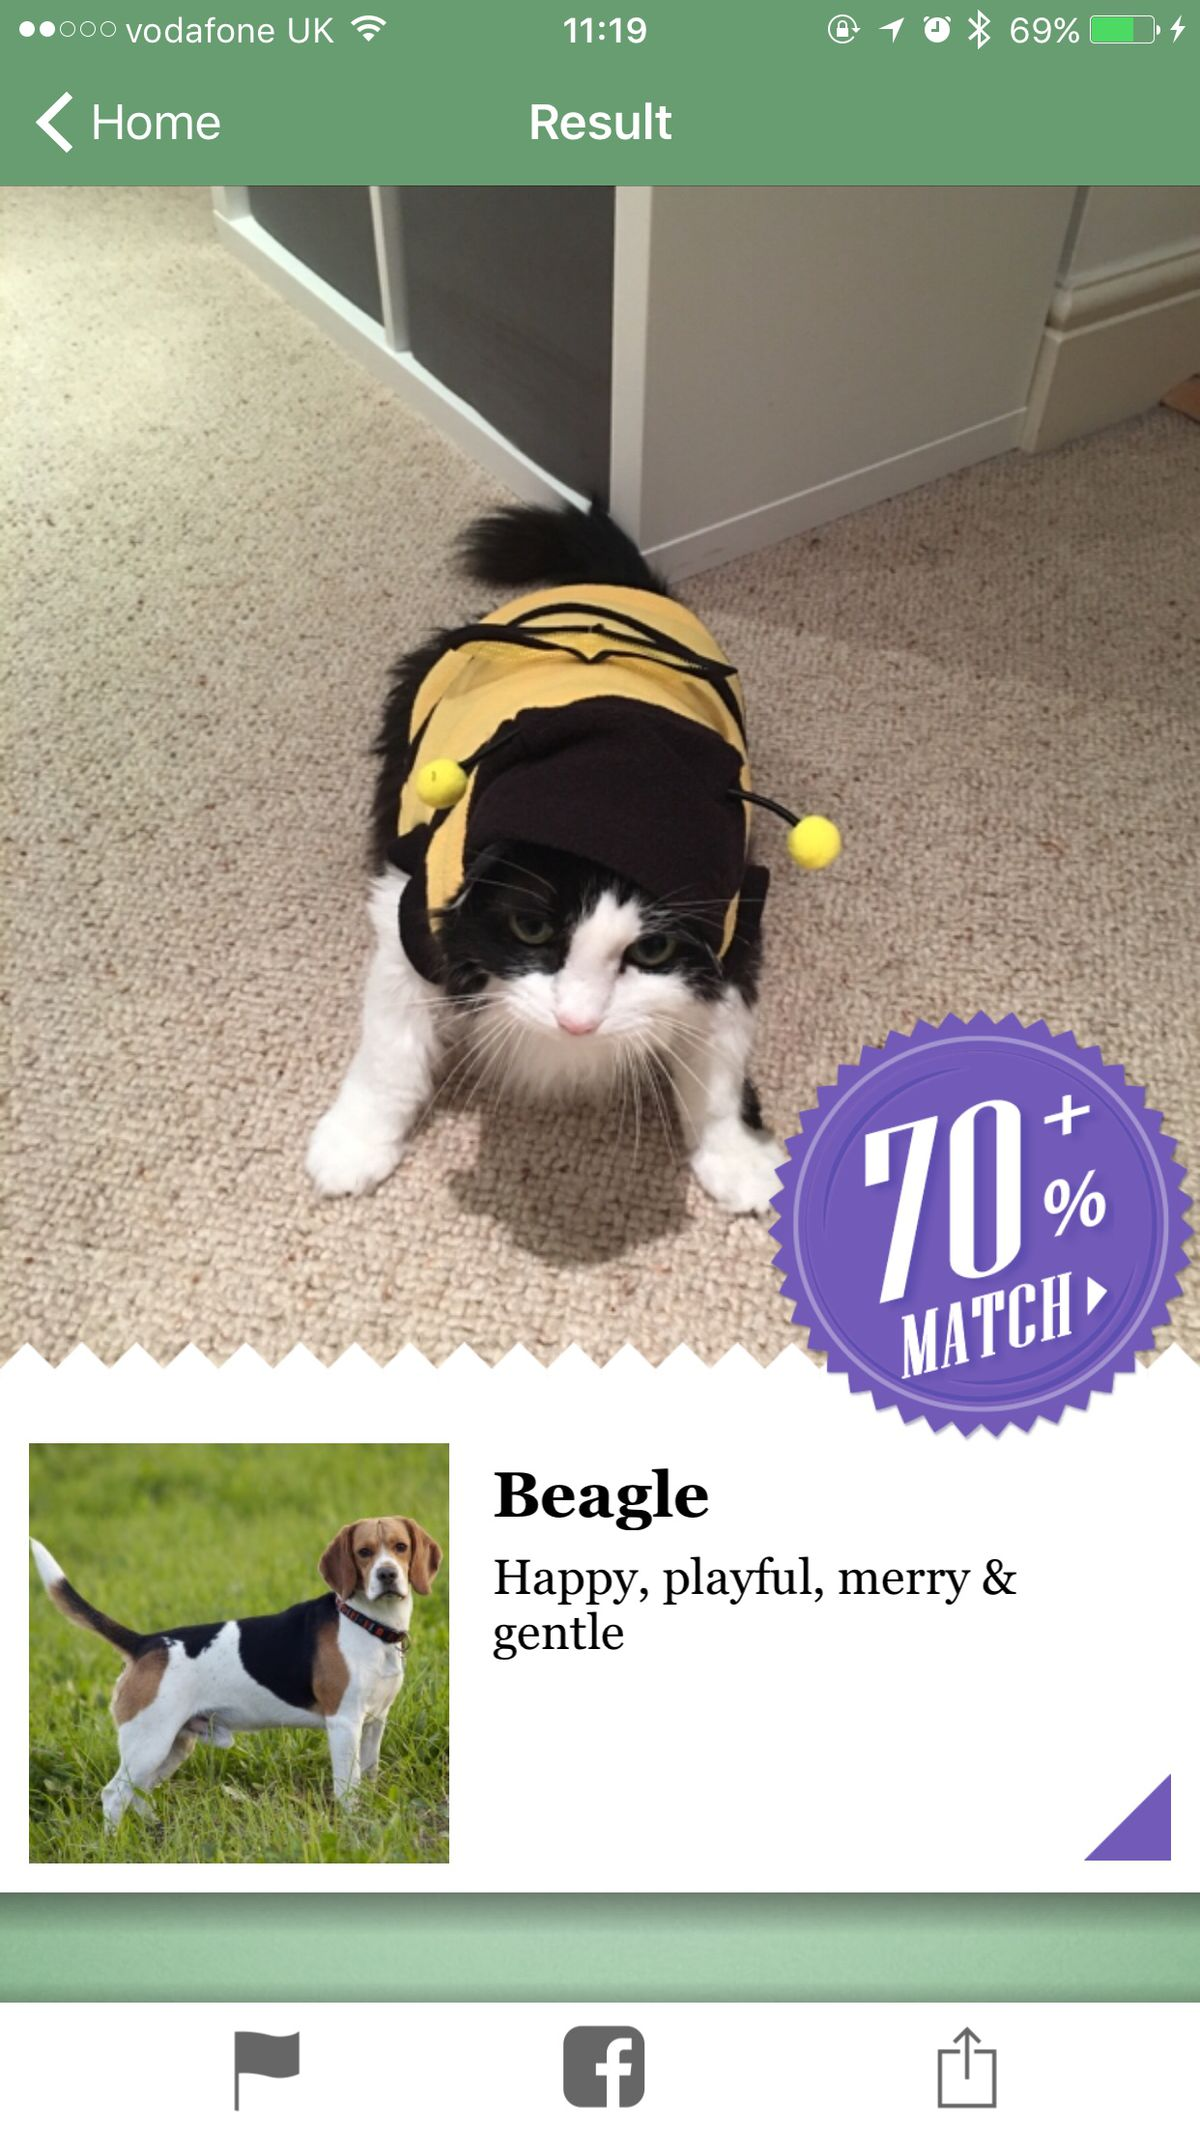 Microsoft's new iPhone app thinks my annoying cat is 70